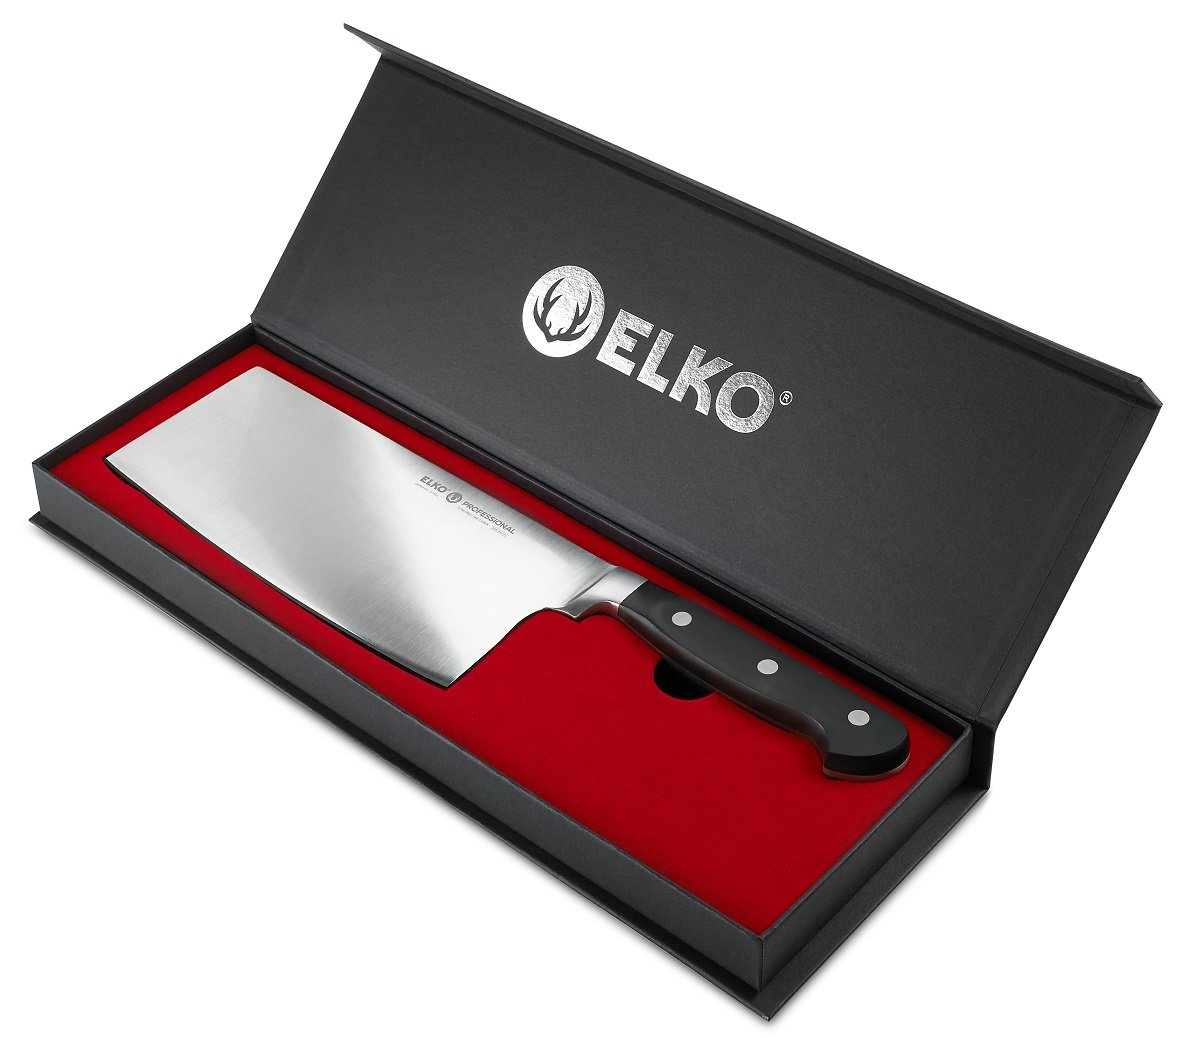 7 Inch Chopper-Cleaver-Butcher Knife – German Steel - In Gift Box - Multipurpose Use For Home Kitchen Or Restaurant – By Elko Professional